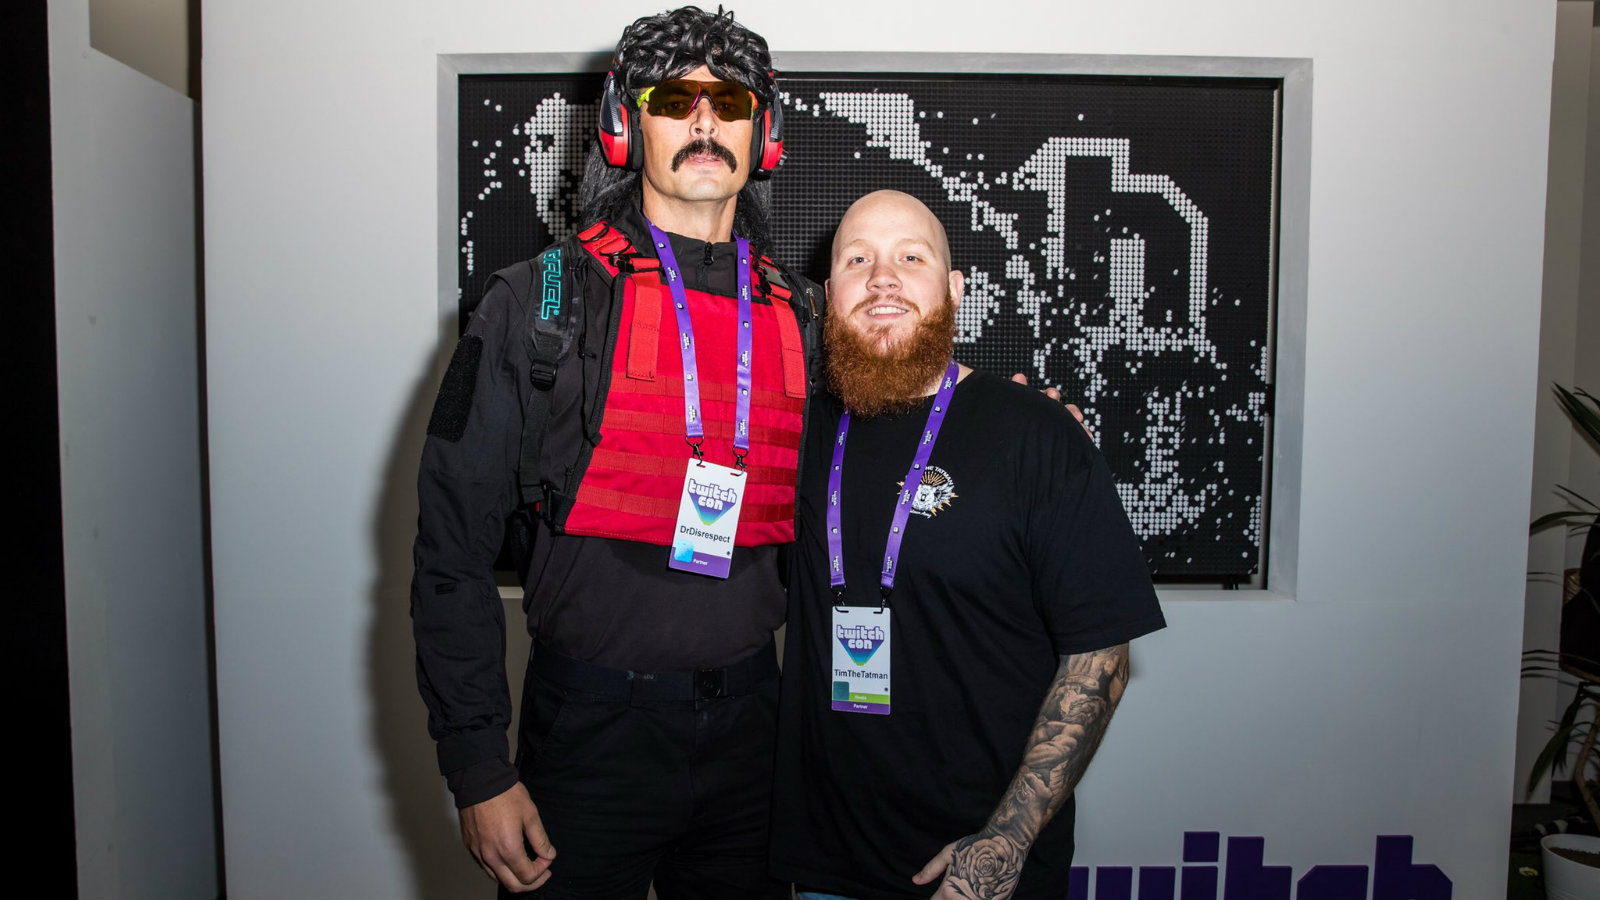 Dr Disrespect and TimTheTatman at TwitchCon